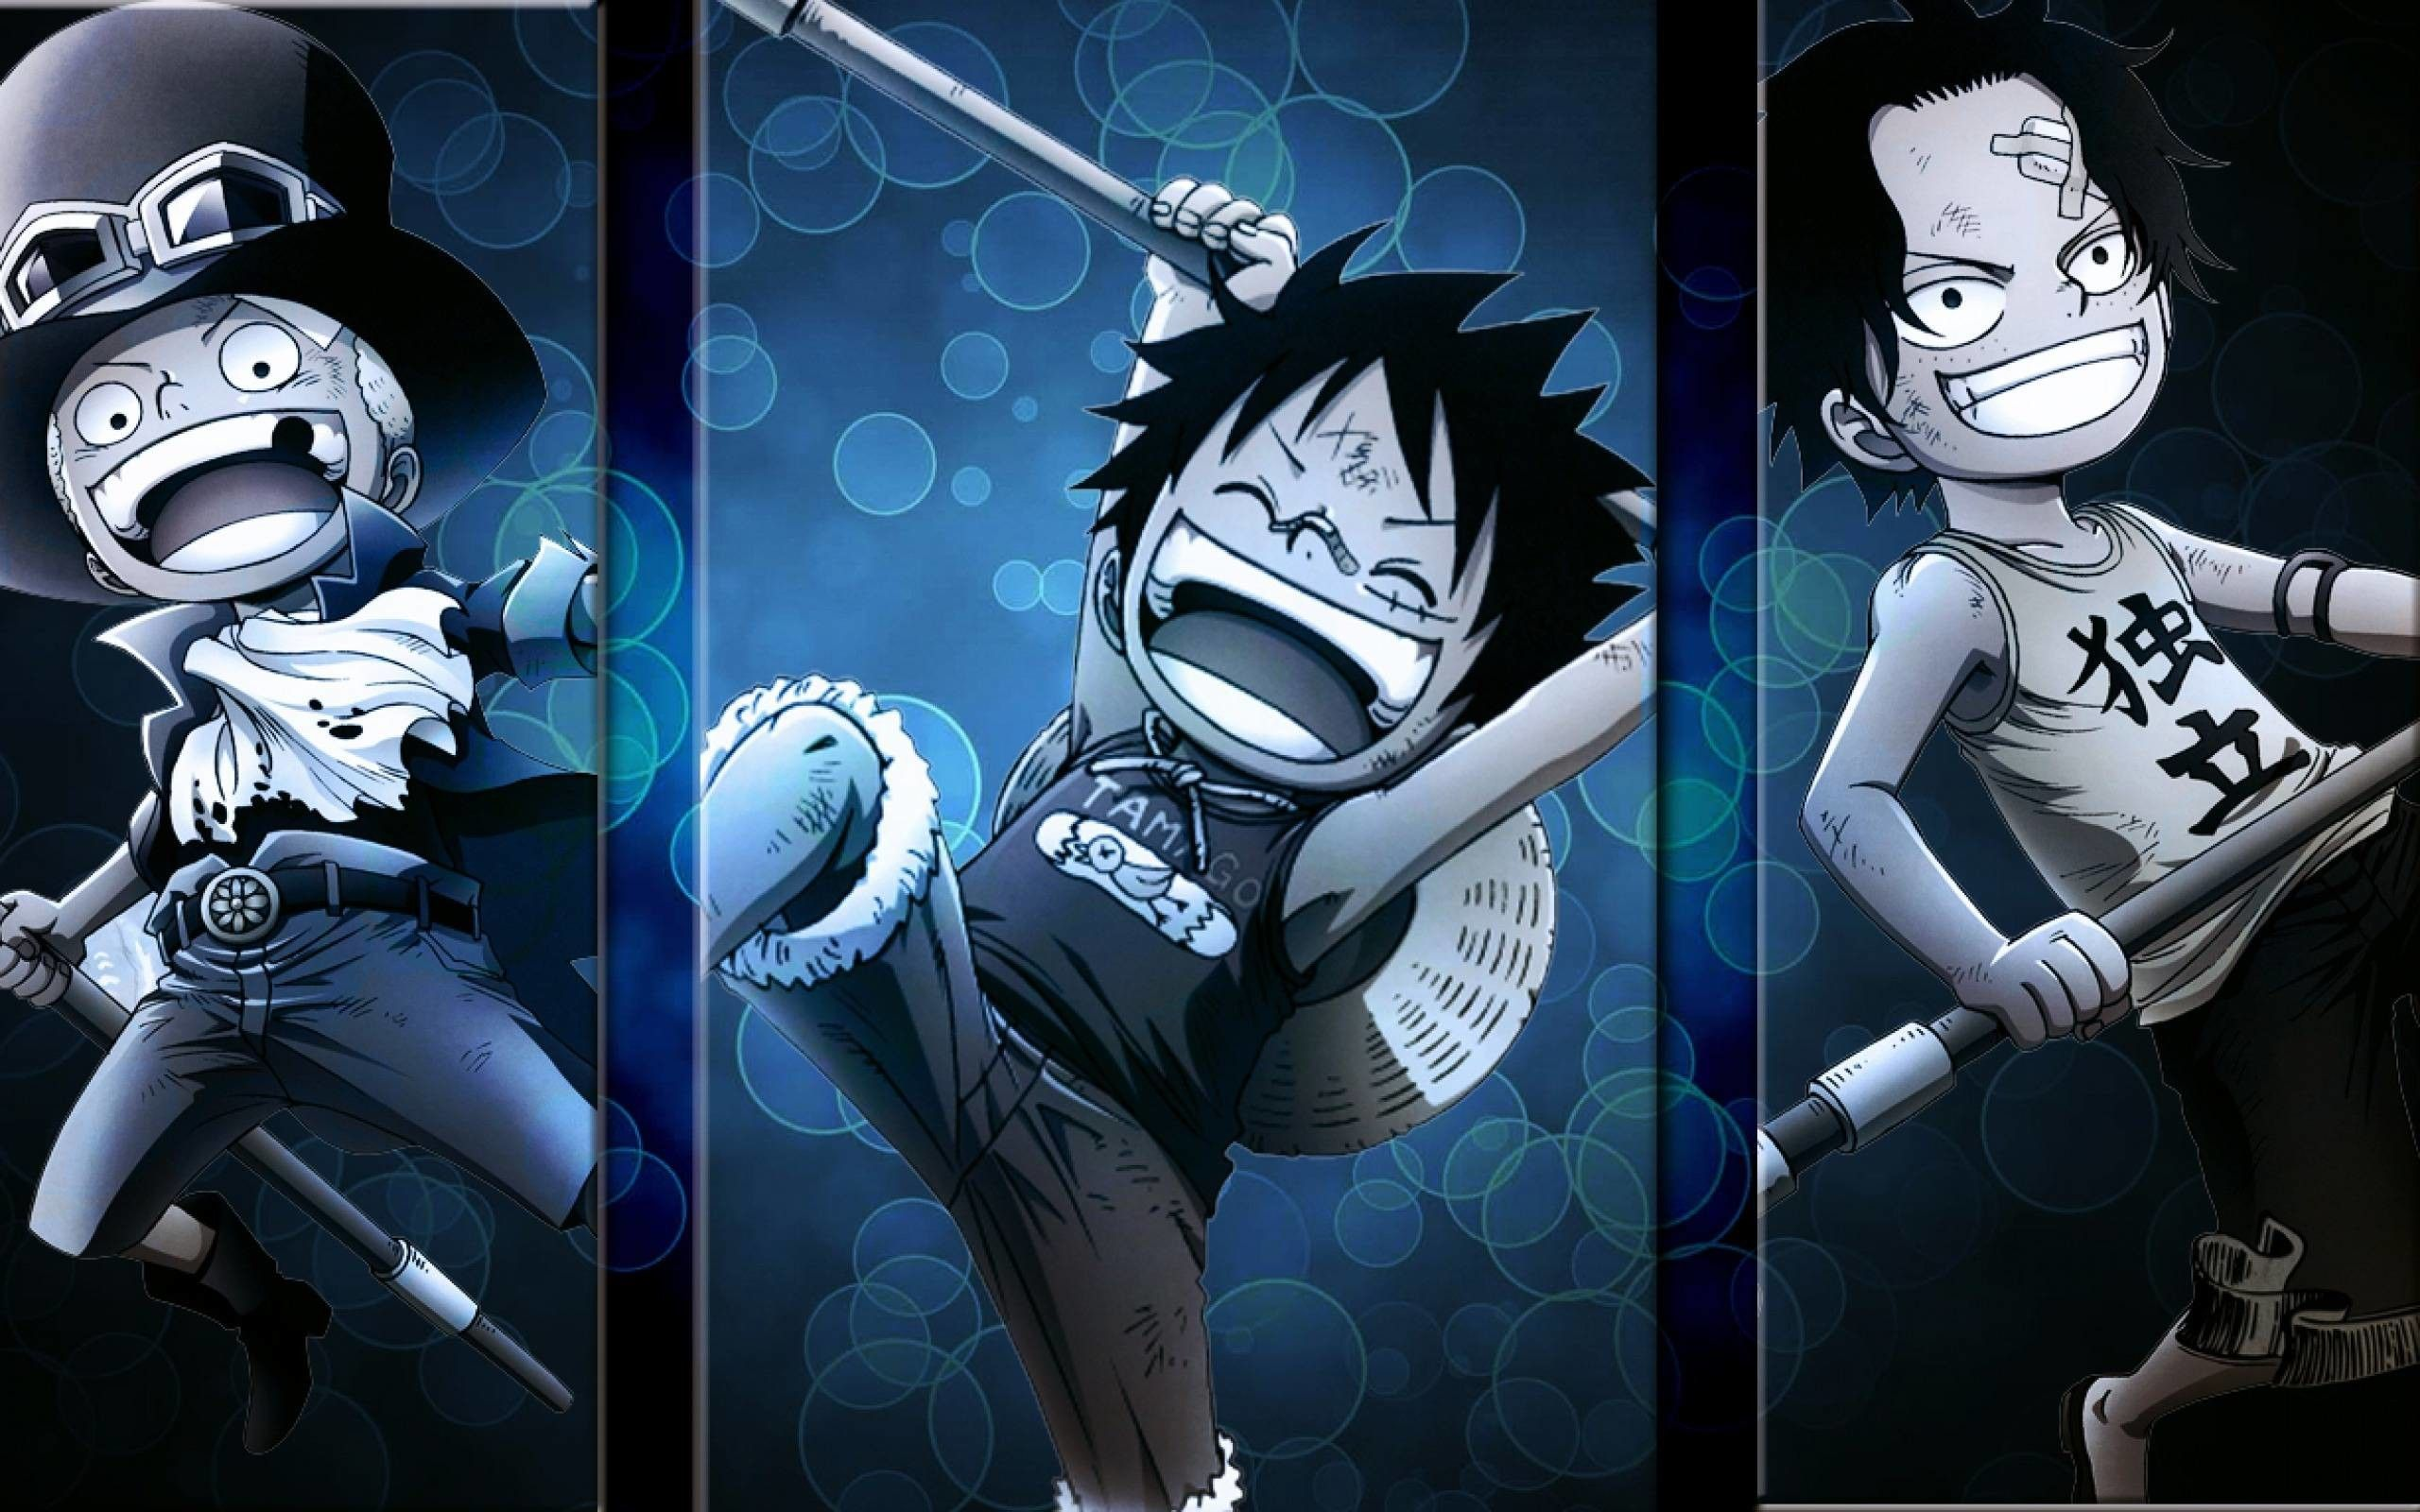 One Piece Luffy And Ace Wallpaper Jllsly One Piece Luffy Ace And Luffy One Piece Manga